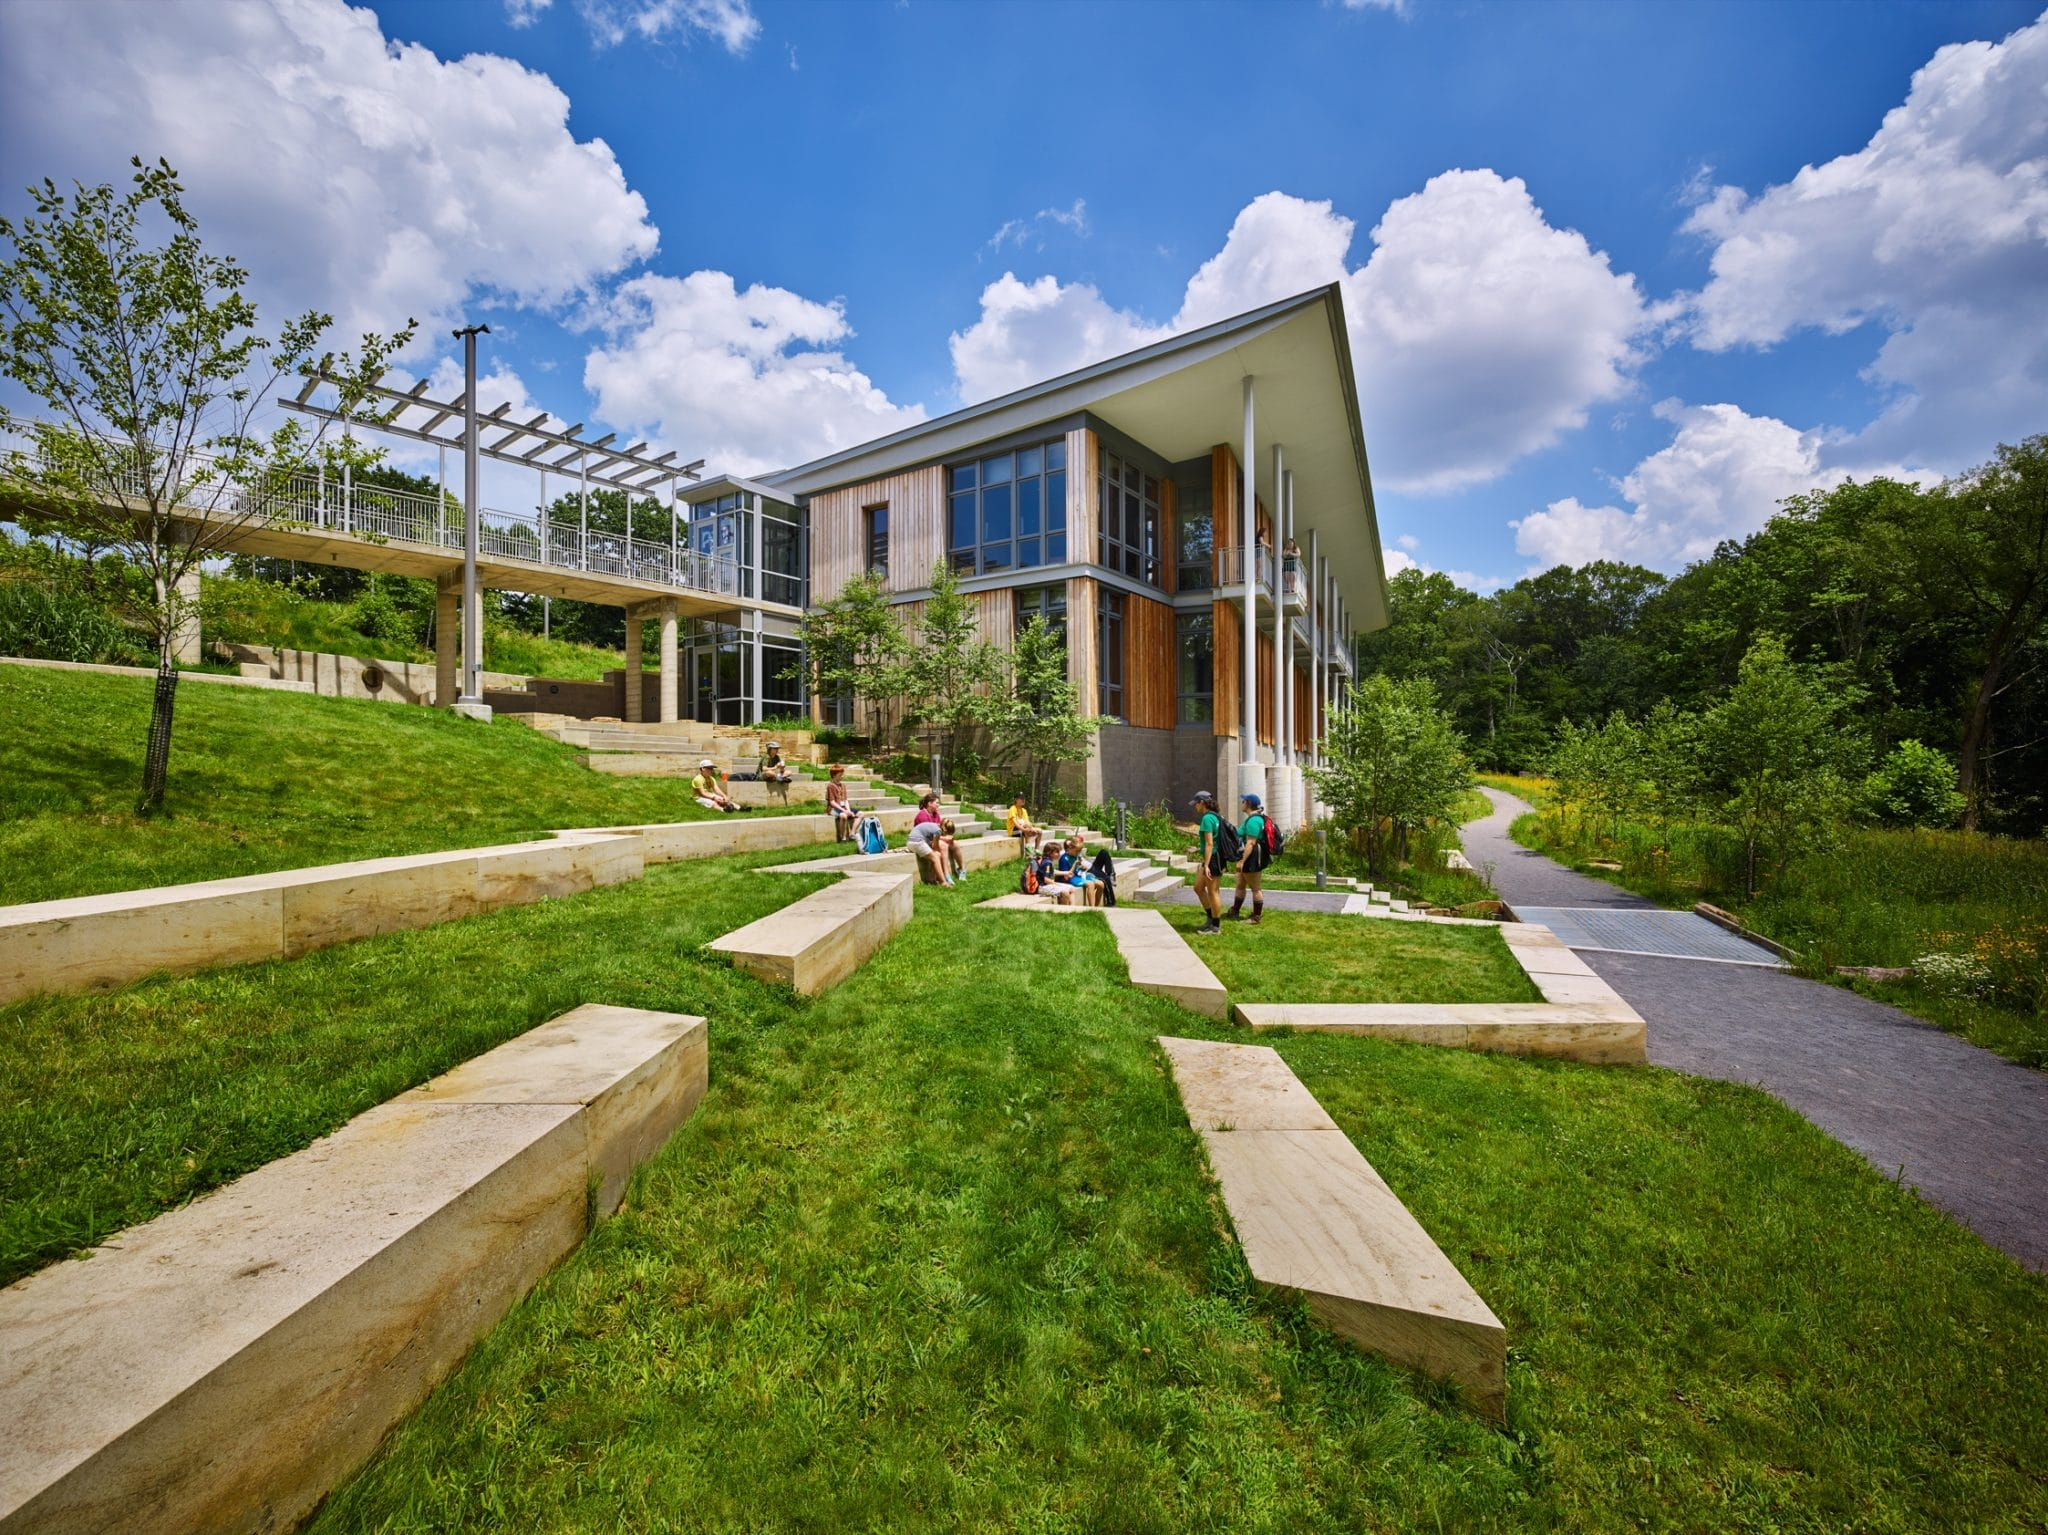 The Frick Environmental Center, one of the world's most sustainable buildings